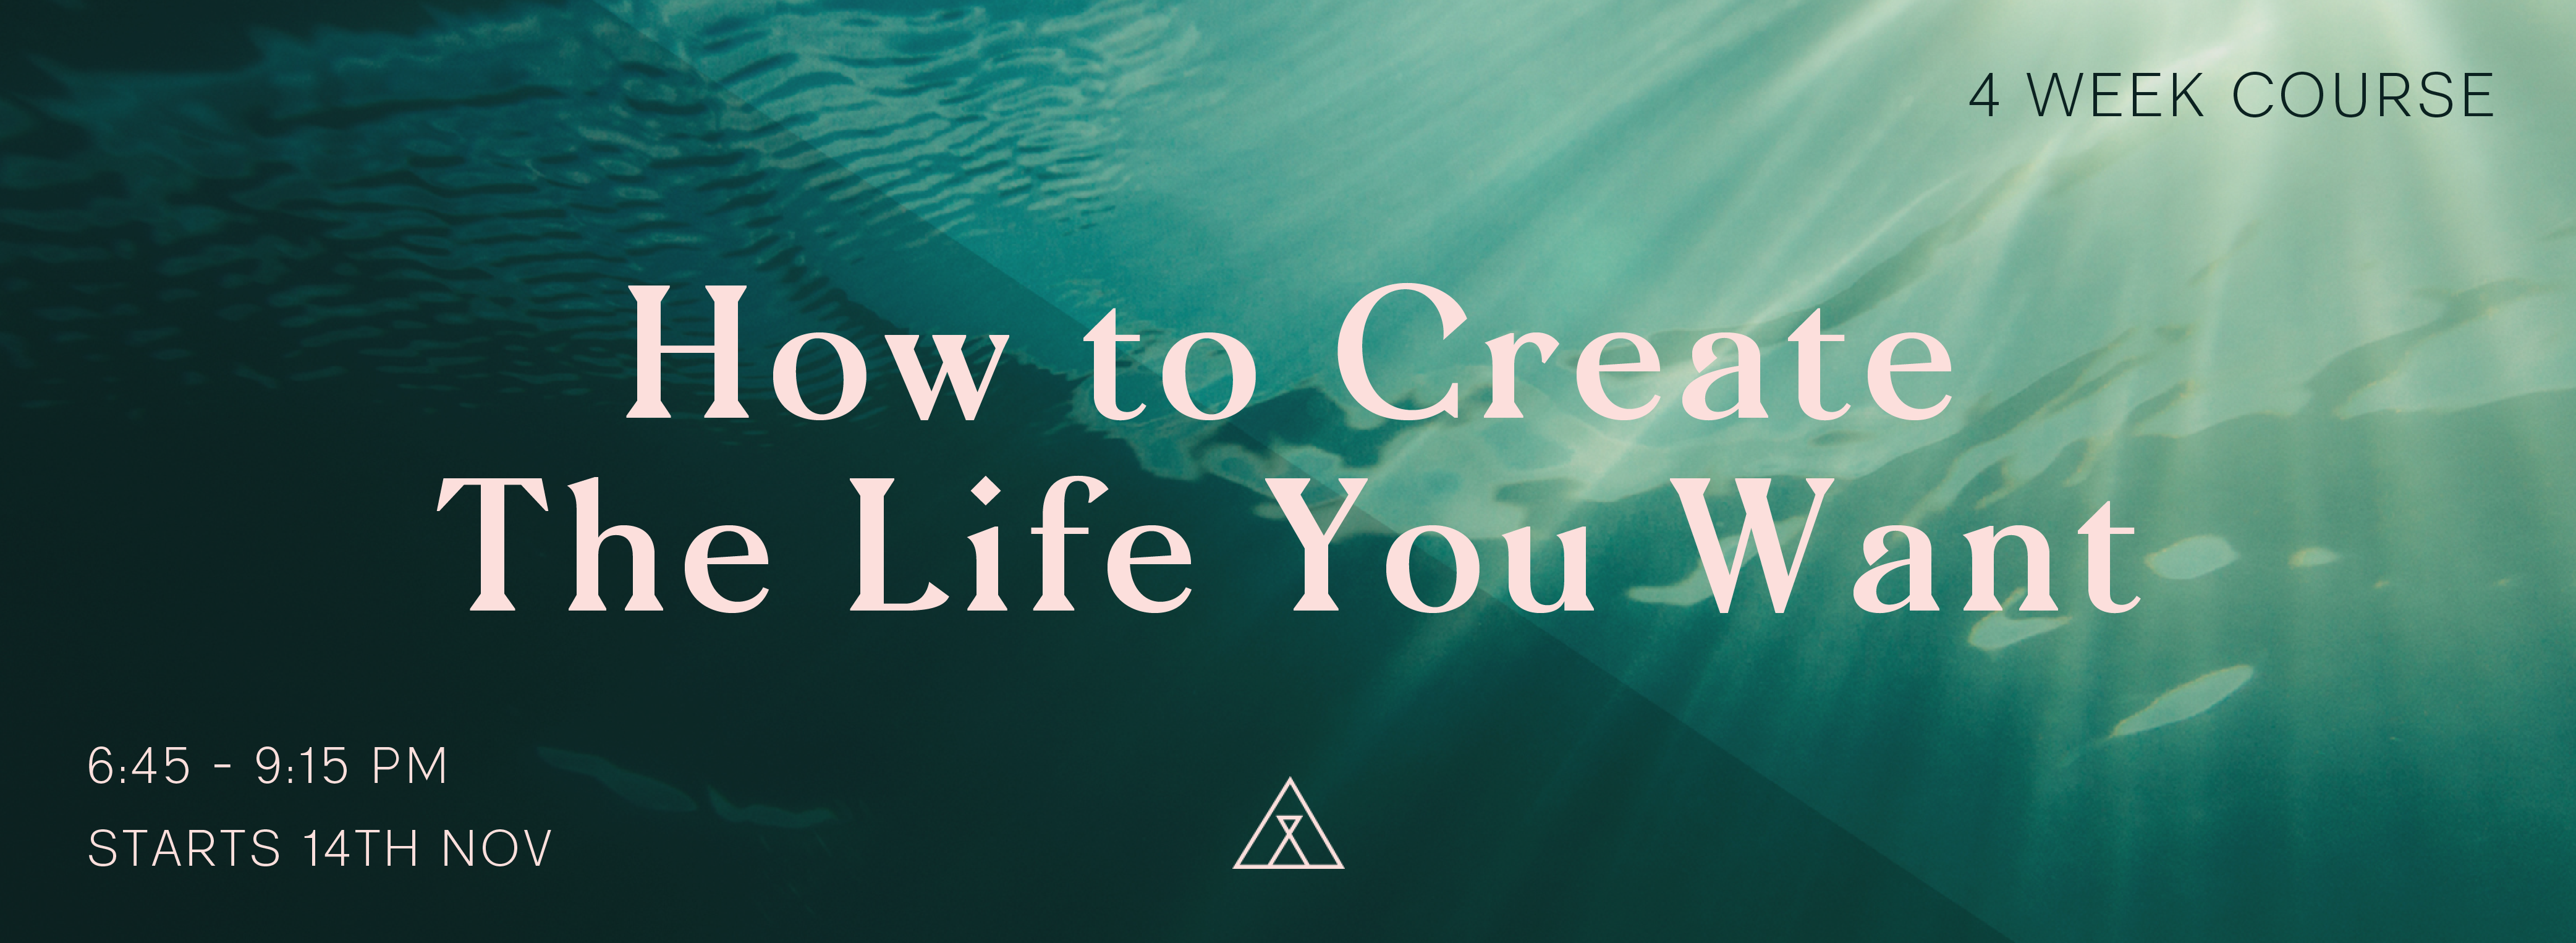 HOW TO CREATE THE LIFE YOU WANT_Web Header